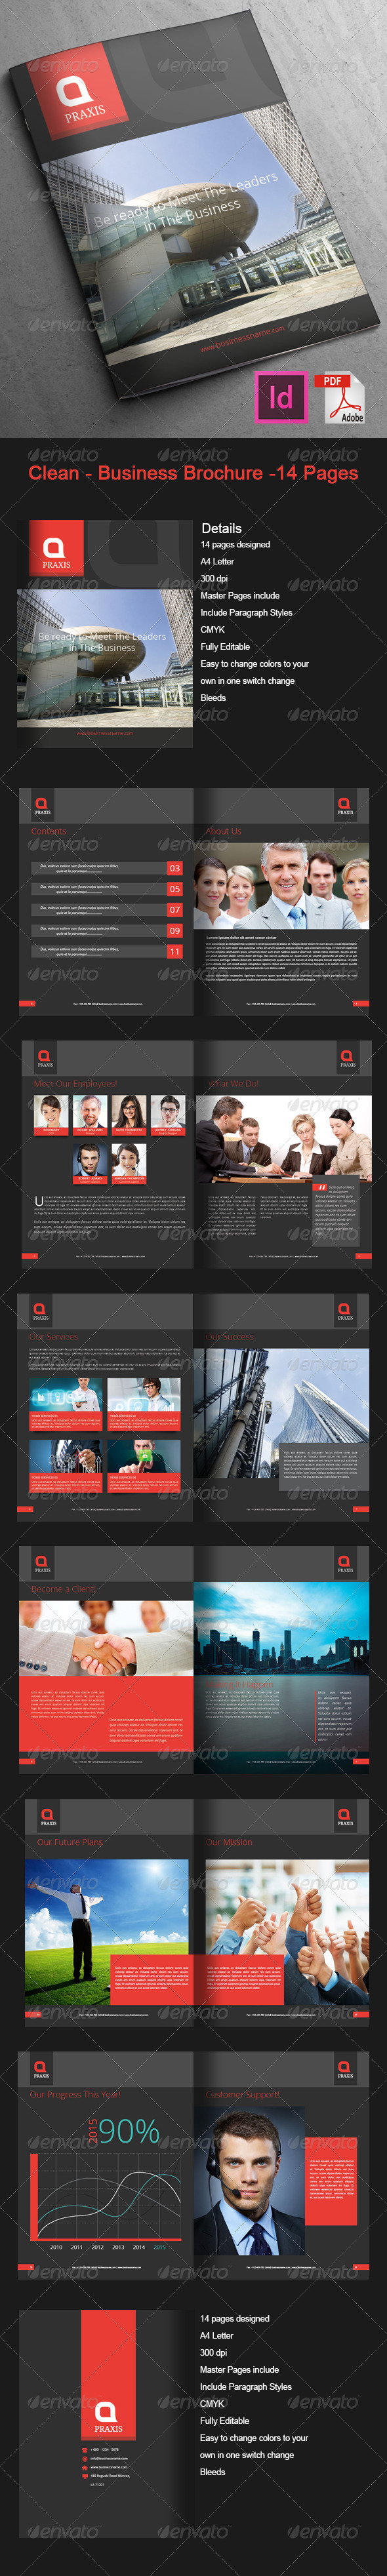 GraphicRiver Clean Business Brochure 14 Pages 7686892